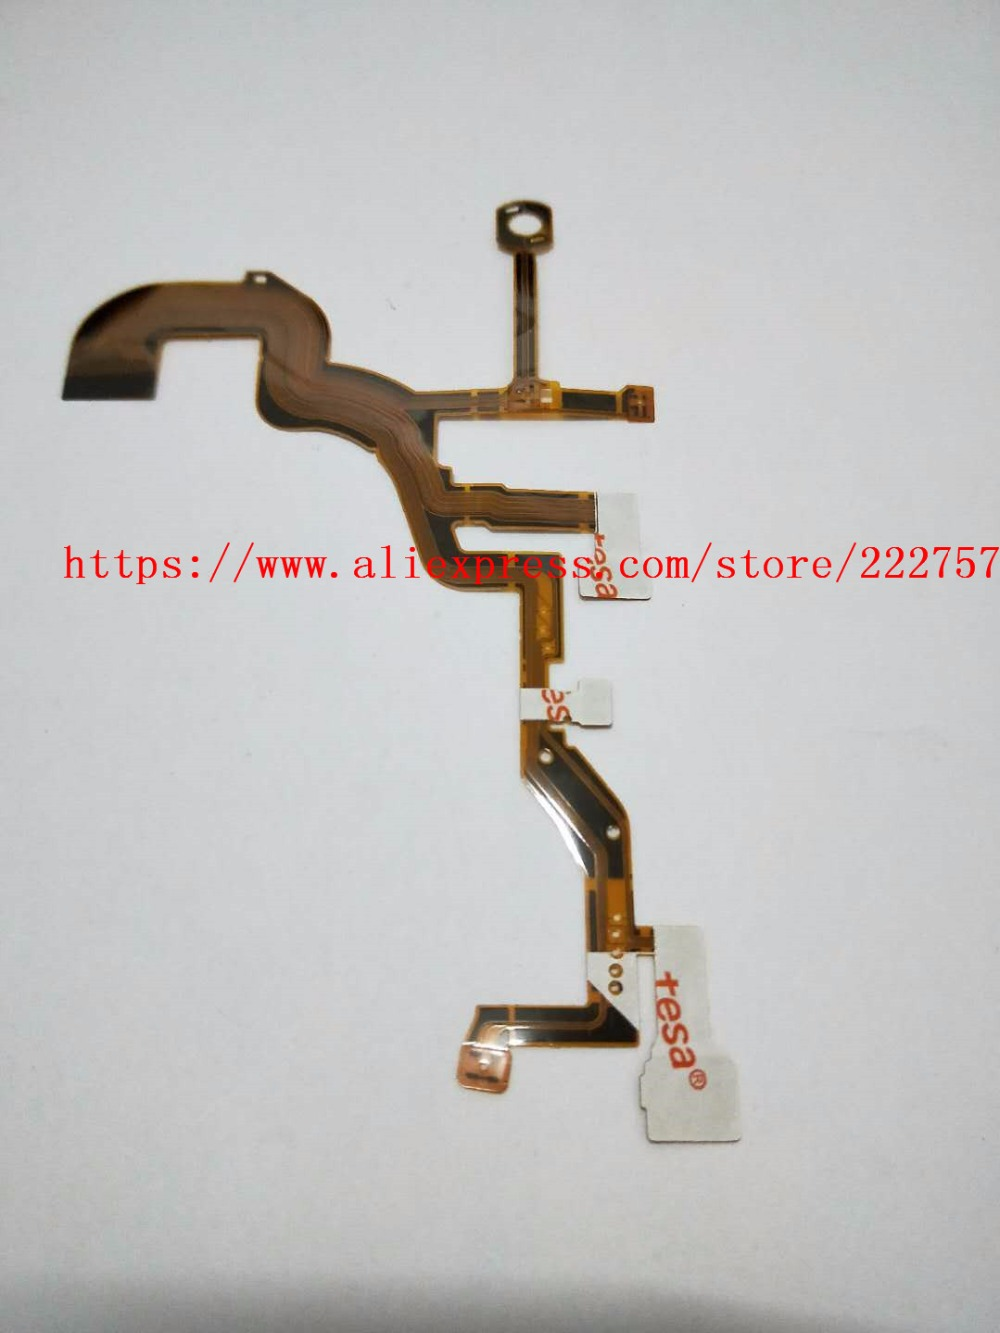 NEW <font><b>Lens</b></font> Back Main Flex Cable For <font><b>SONY</b></font> DSC-WX300 DSC-<font><b>WX350</b></font> WX300 <font><b>WX350</b></font> Digital Camera Repair Part No Socket with Socket image